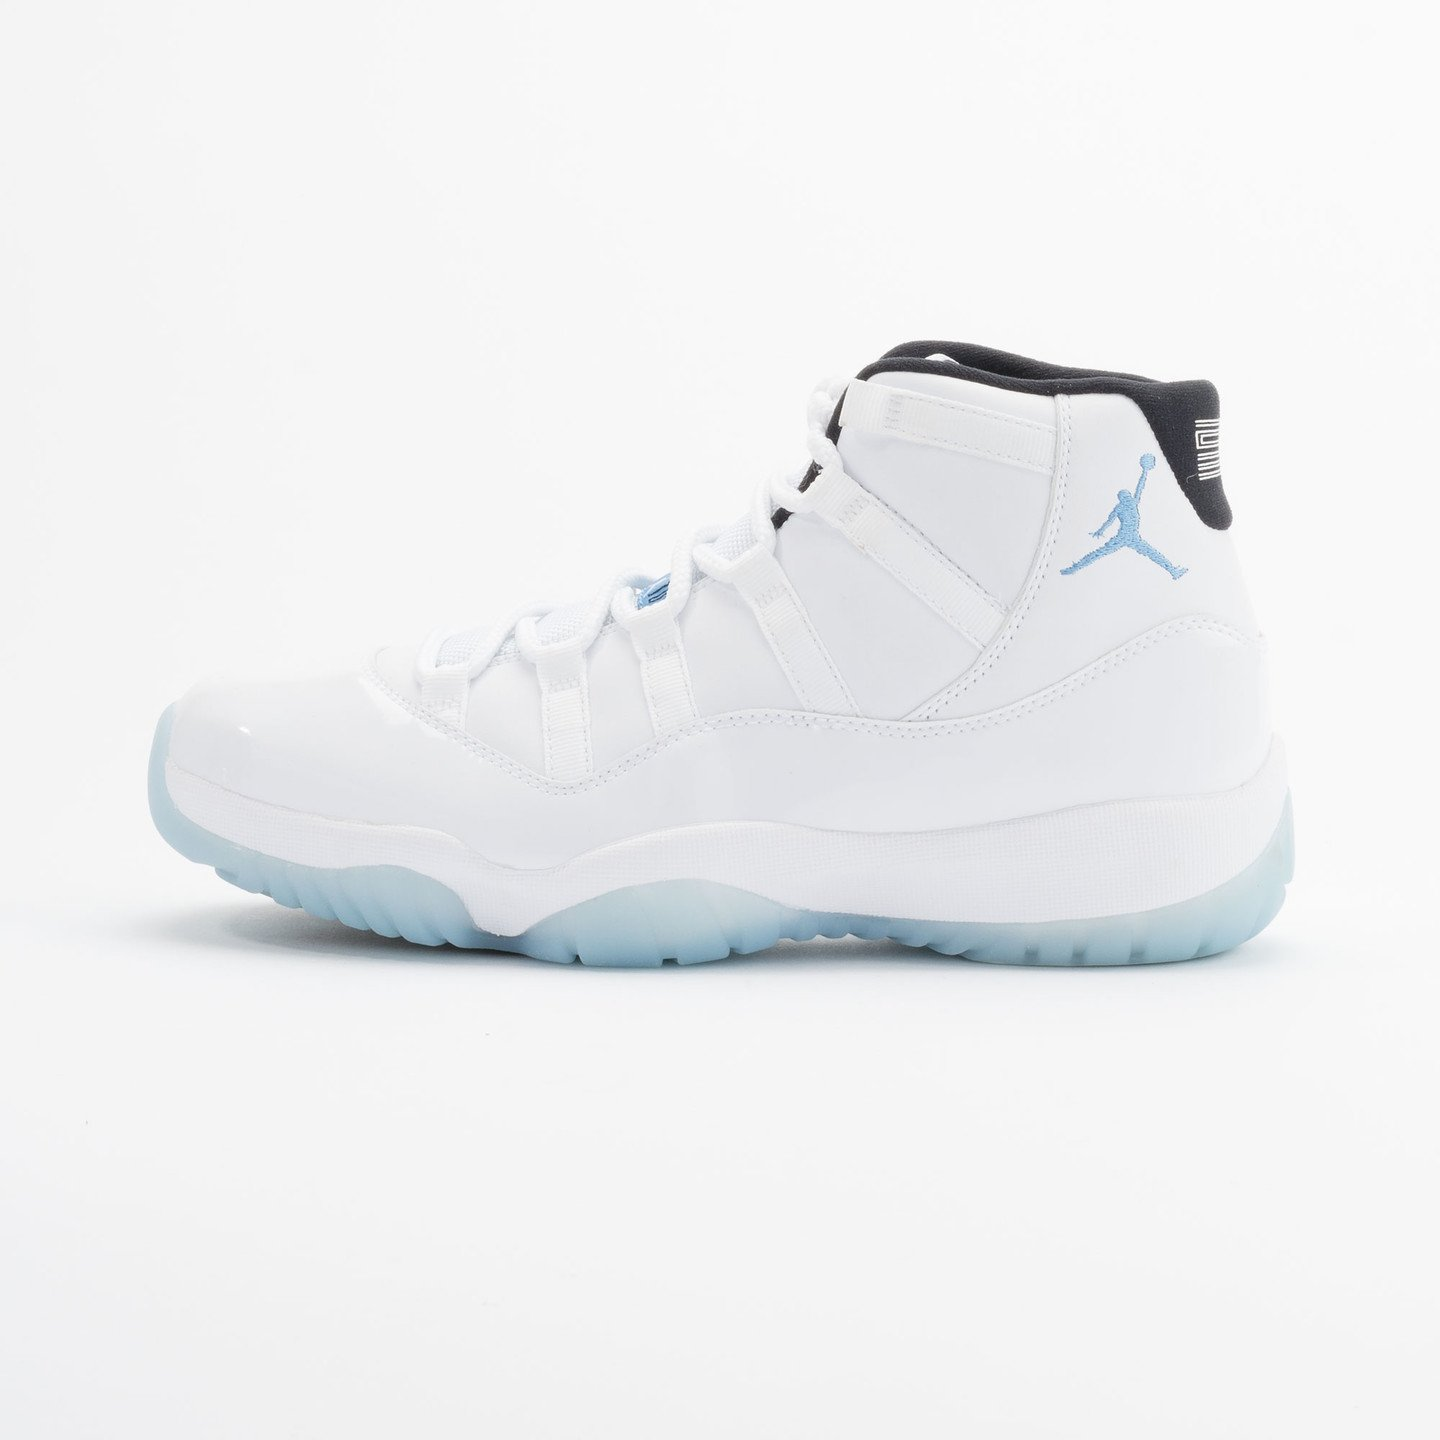 Jordan Air Jordan 11 Retro White/Legend Blue-Black 378037-117-41